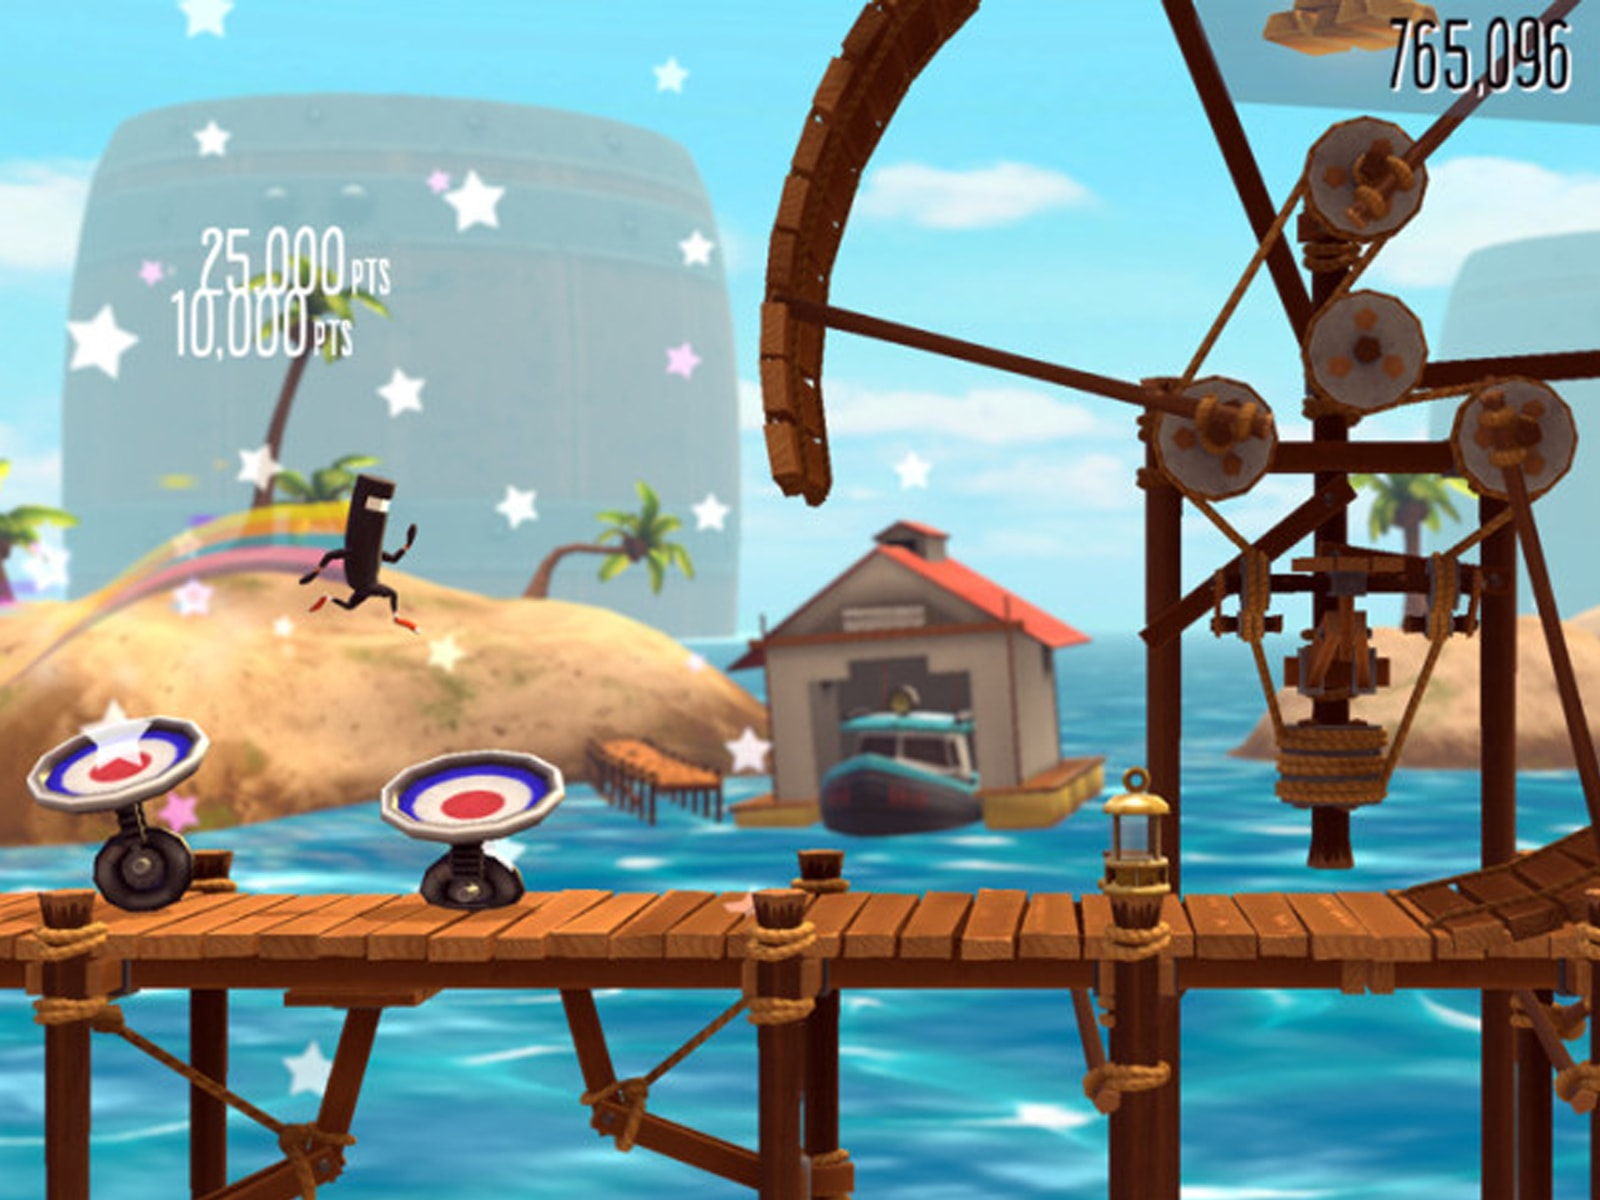 Screenshot of the Aquatic Symphonic level from bit.trip runner 2, with a character running on a wooden platform above water